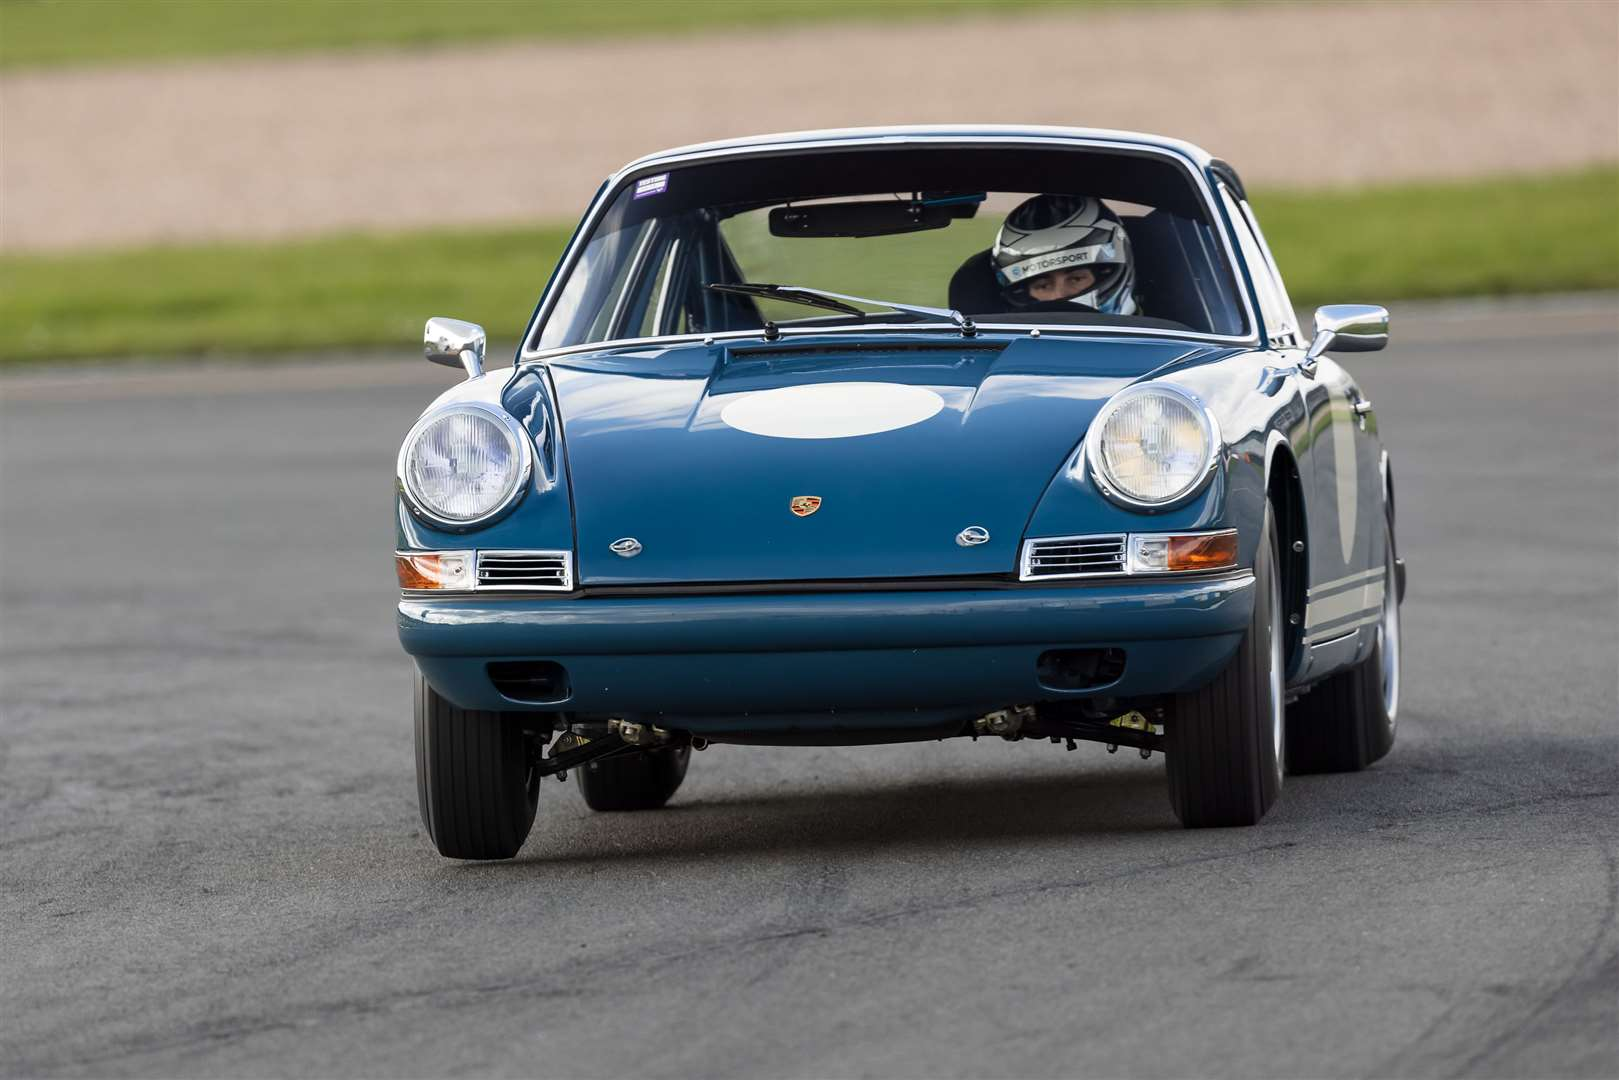 THE pre-66 Porsche 911 in testing last week at Donington Park. Credit: Rob Overy